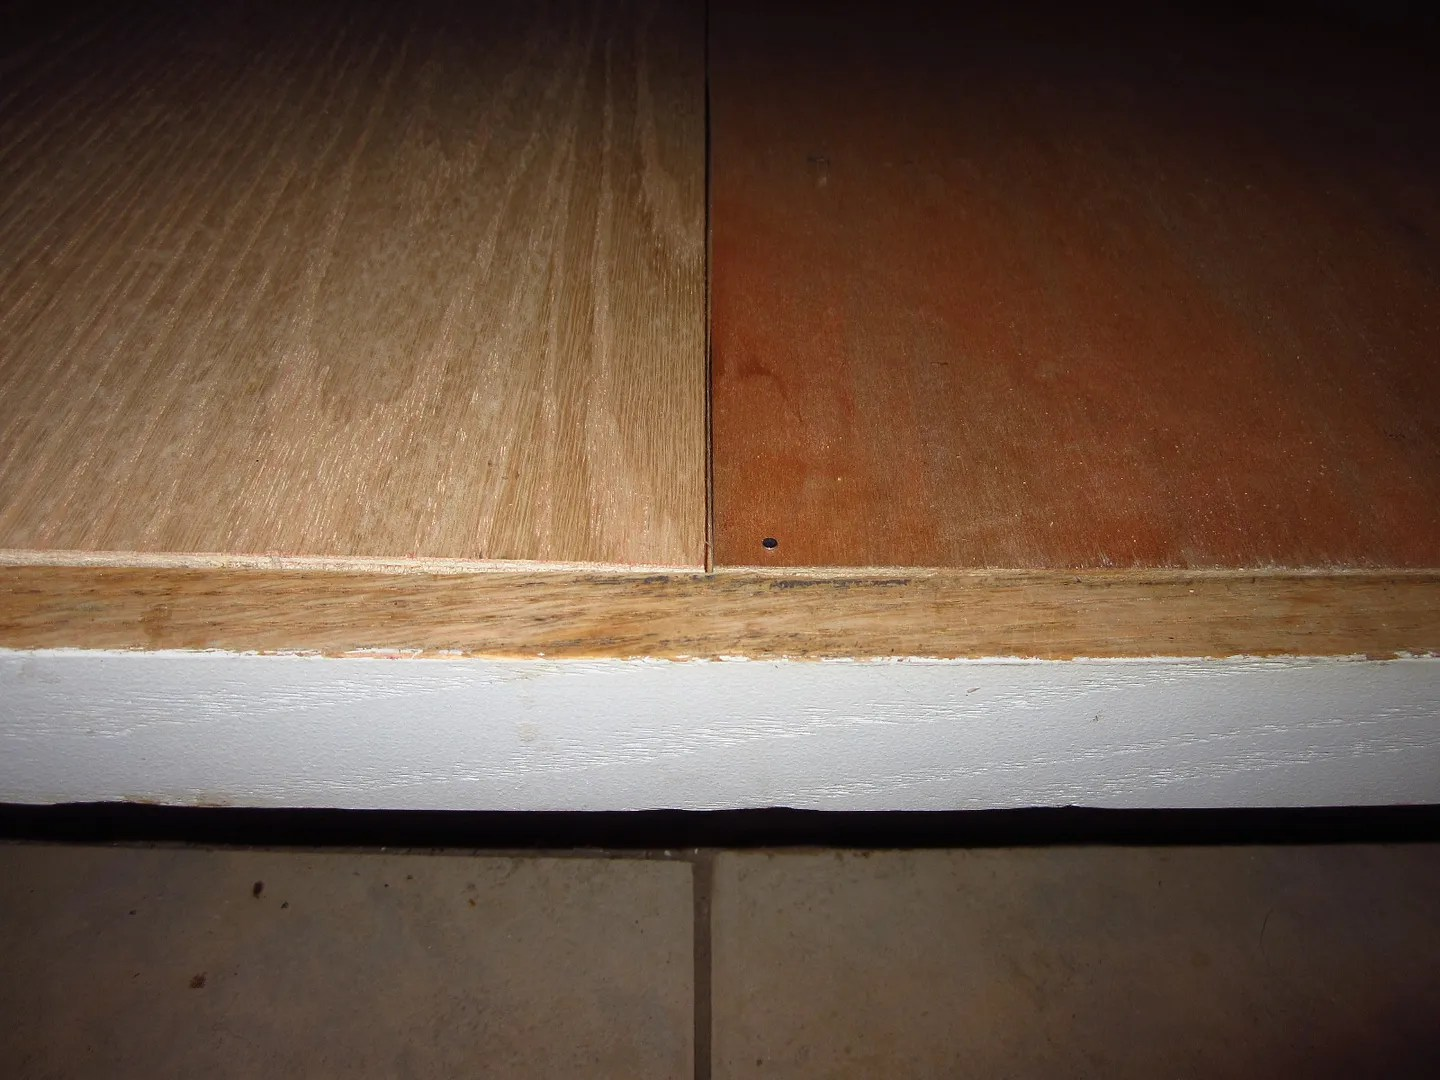 How to Fix a Warped Cabinet Floor/HomeStagingBloomingtonIL